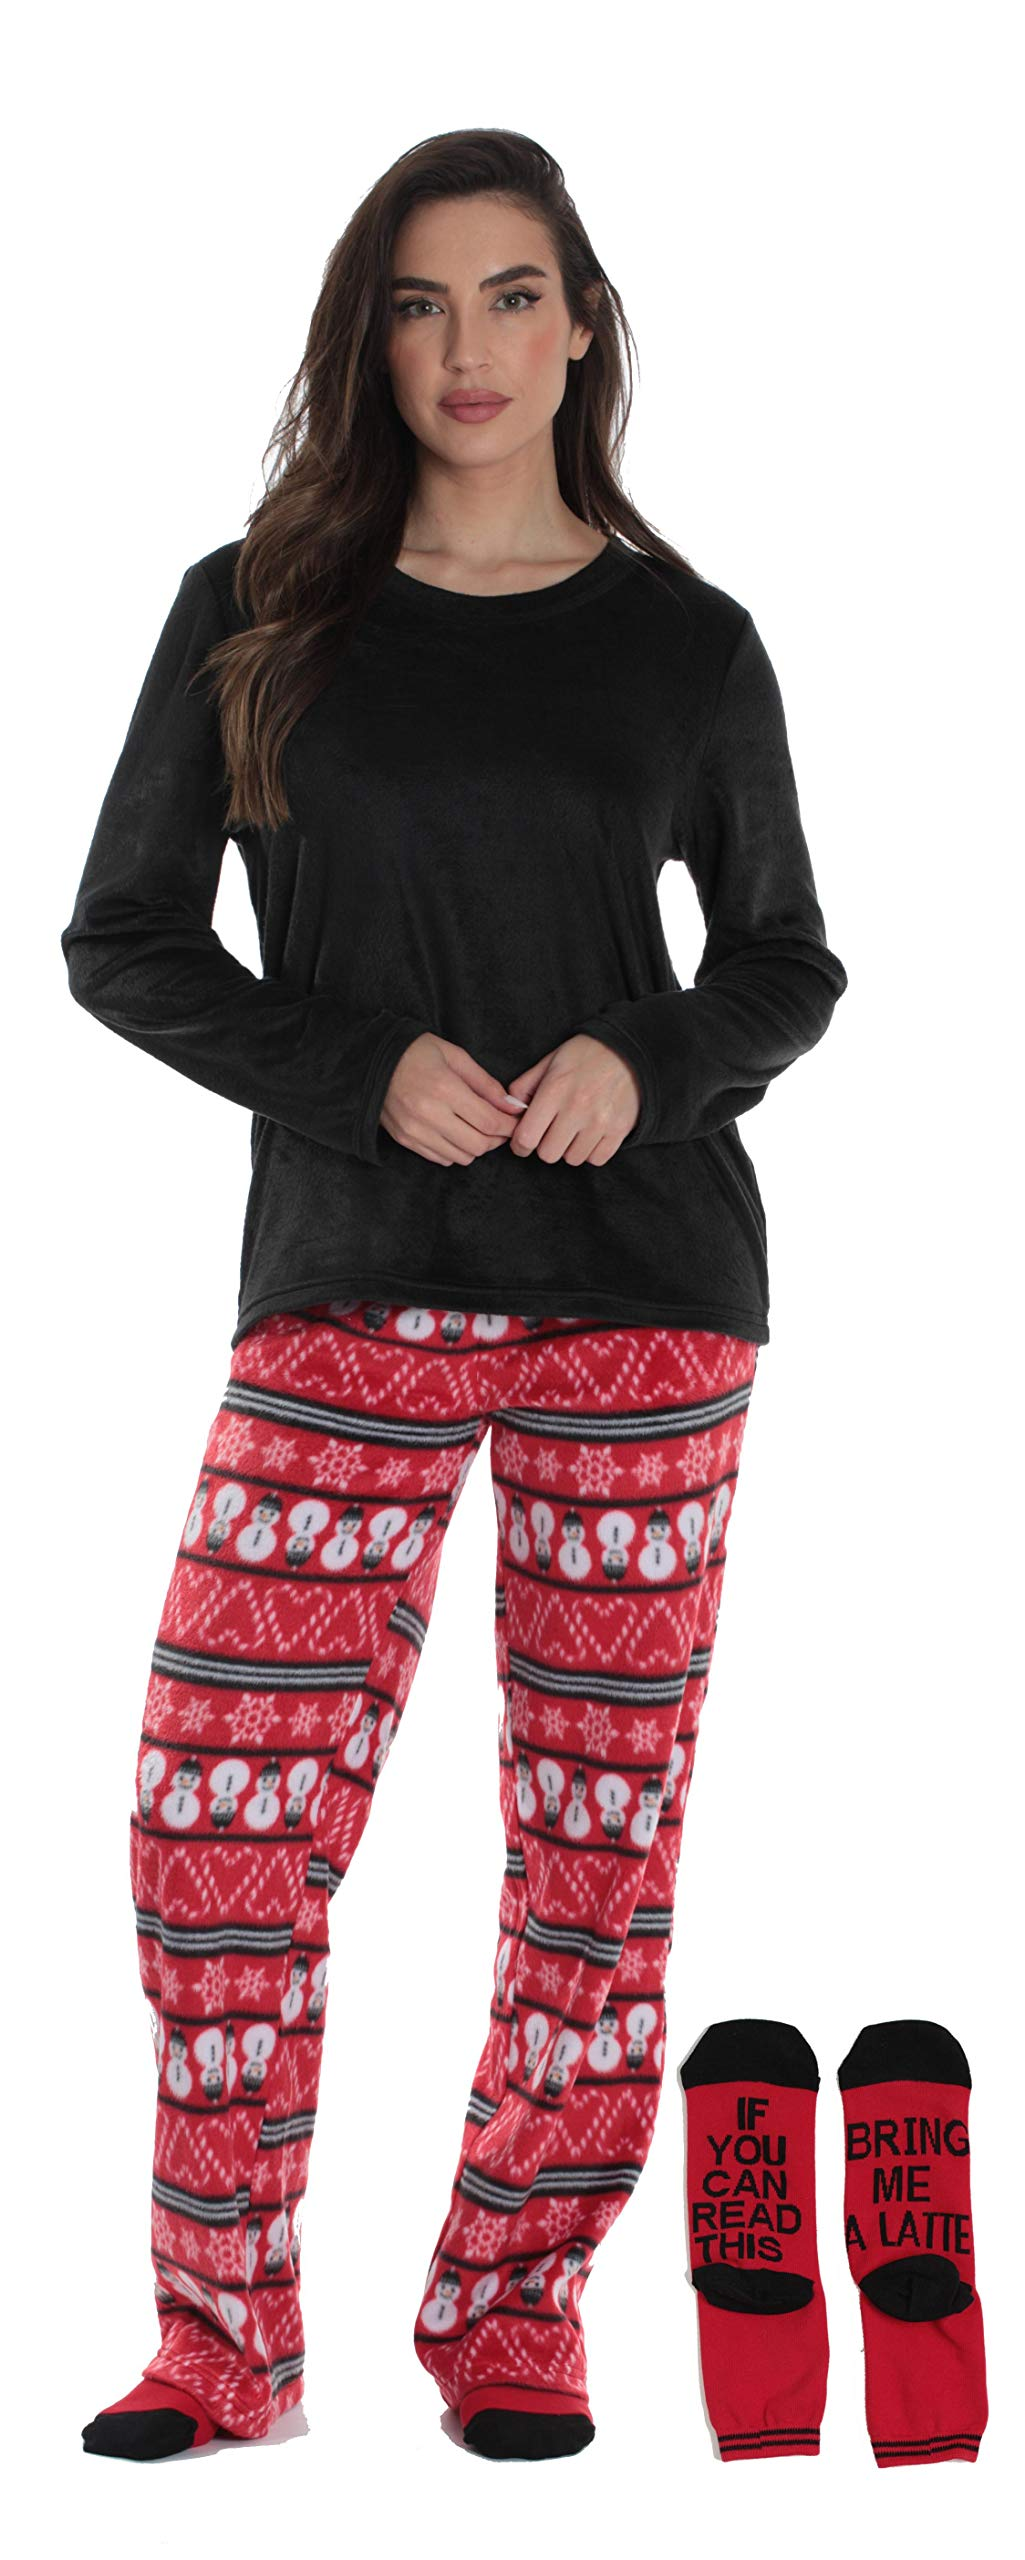 Just Love Ultra-Soft Women's Pajama Pant Set - Nightgown with Matching Socks